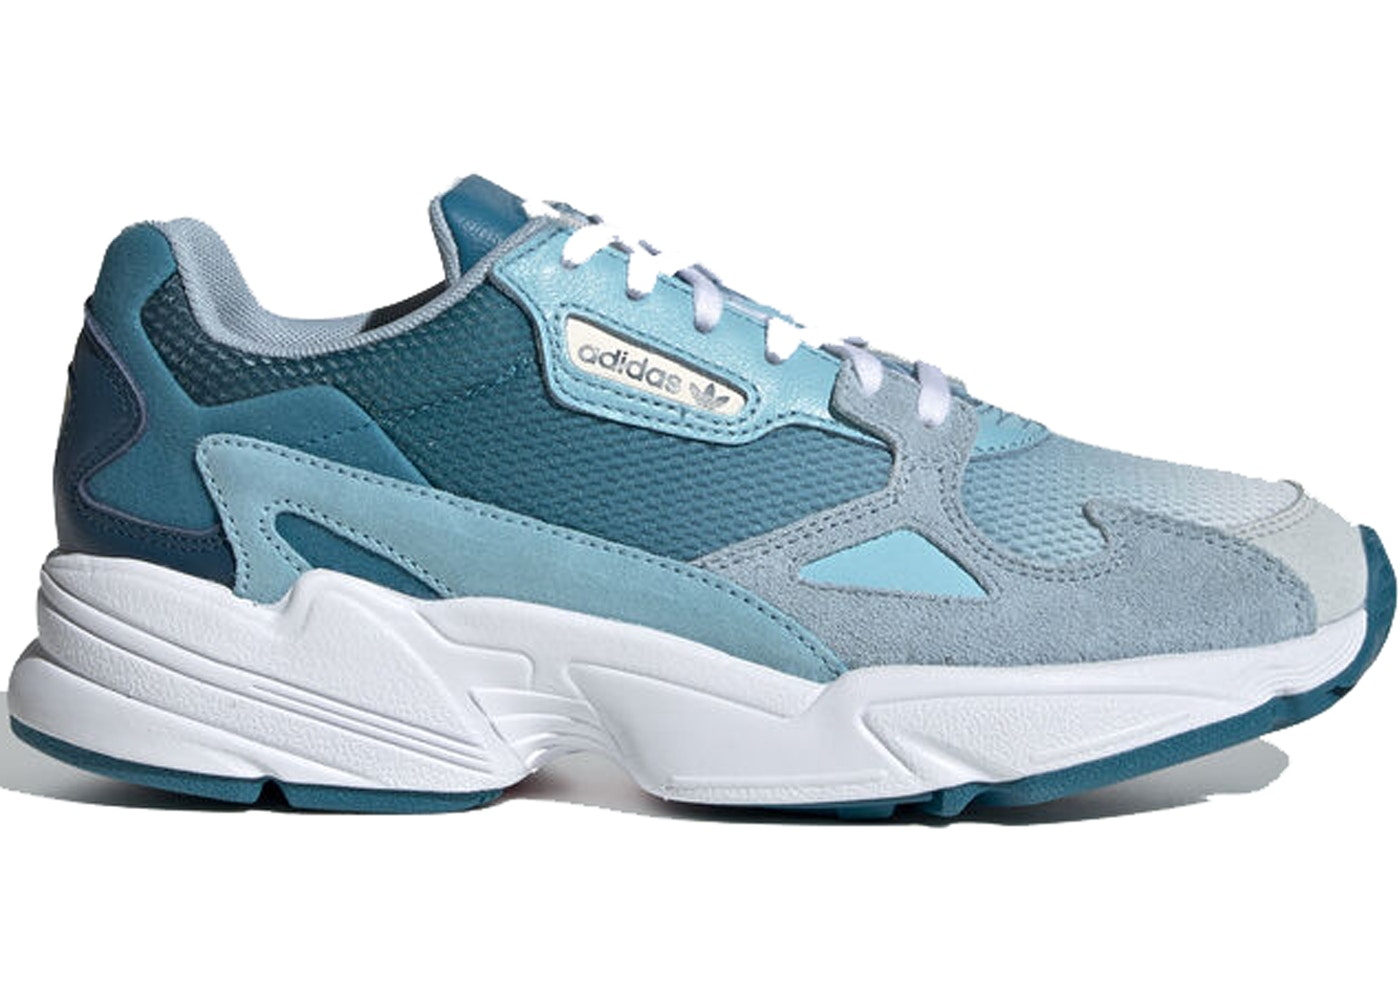 adidas Falcon Blue Tint Light Aqua (W)